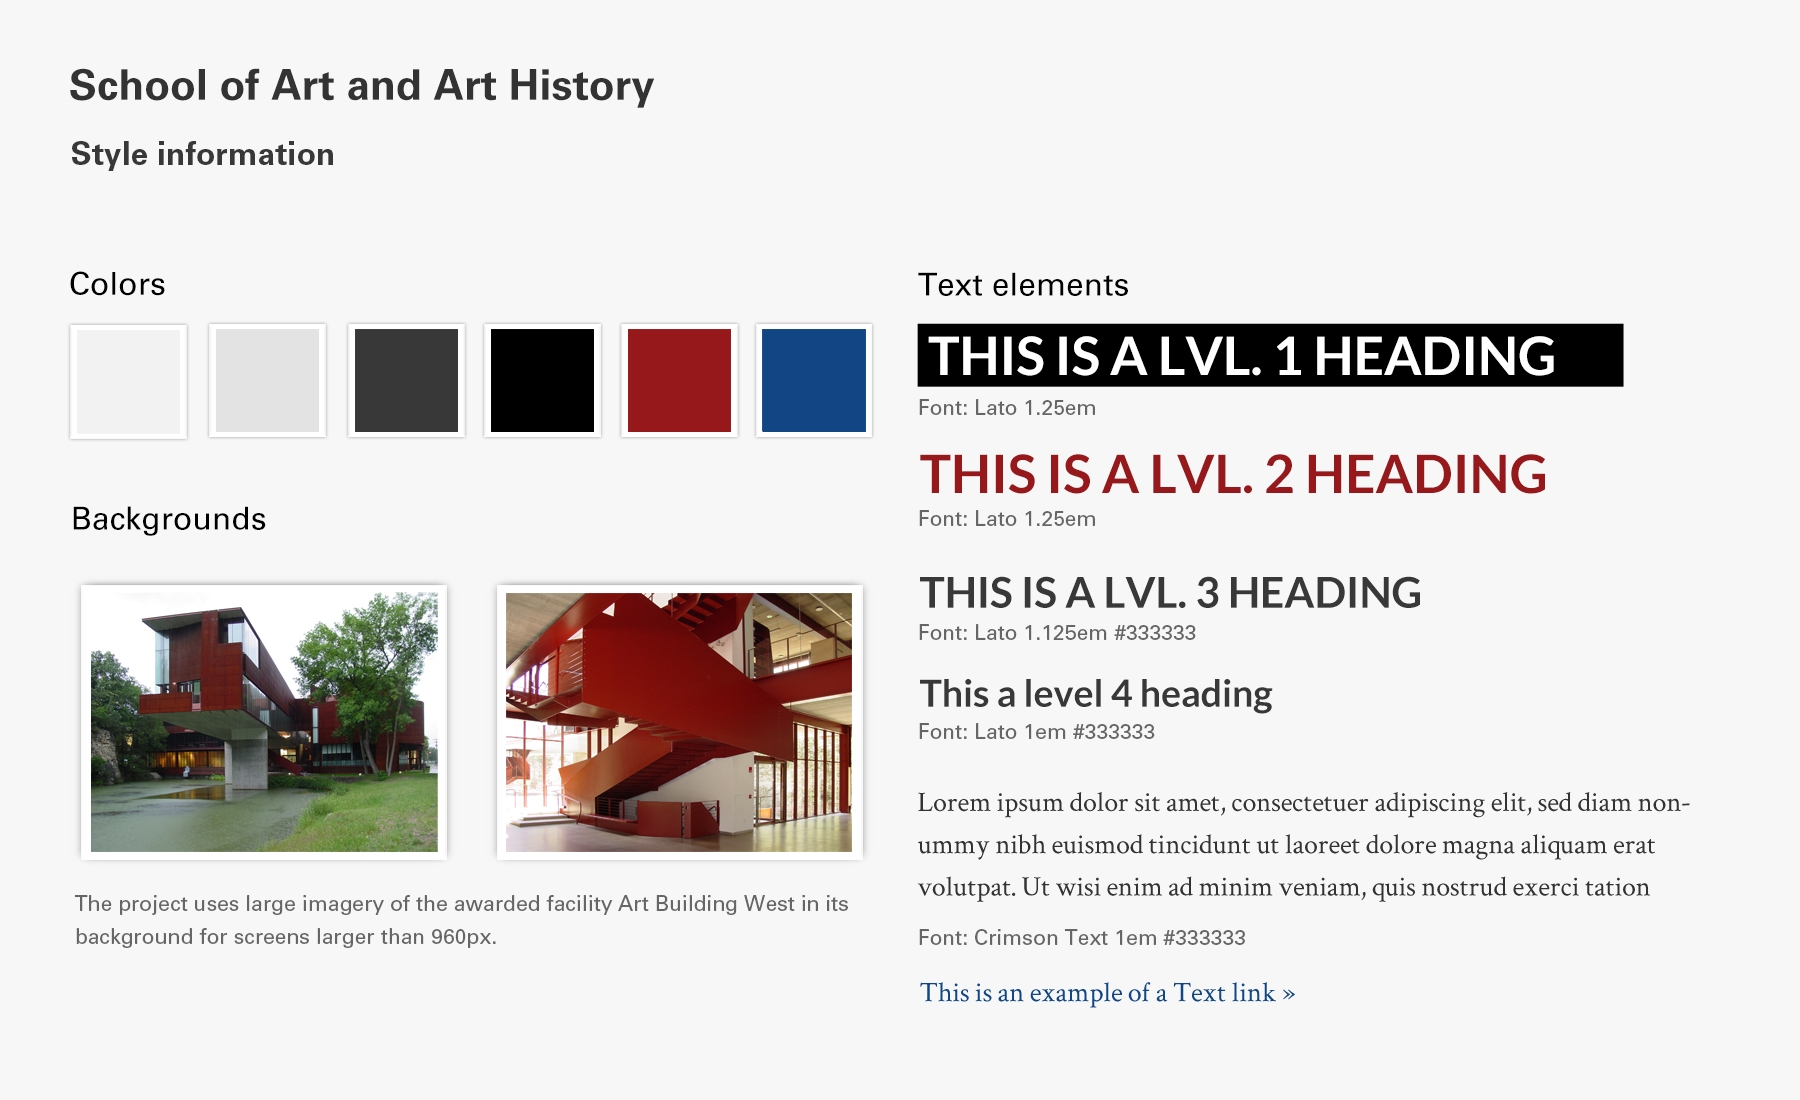 School of Art and Art History Website